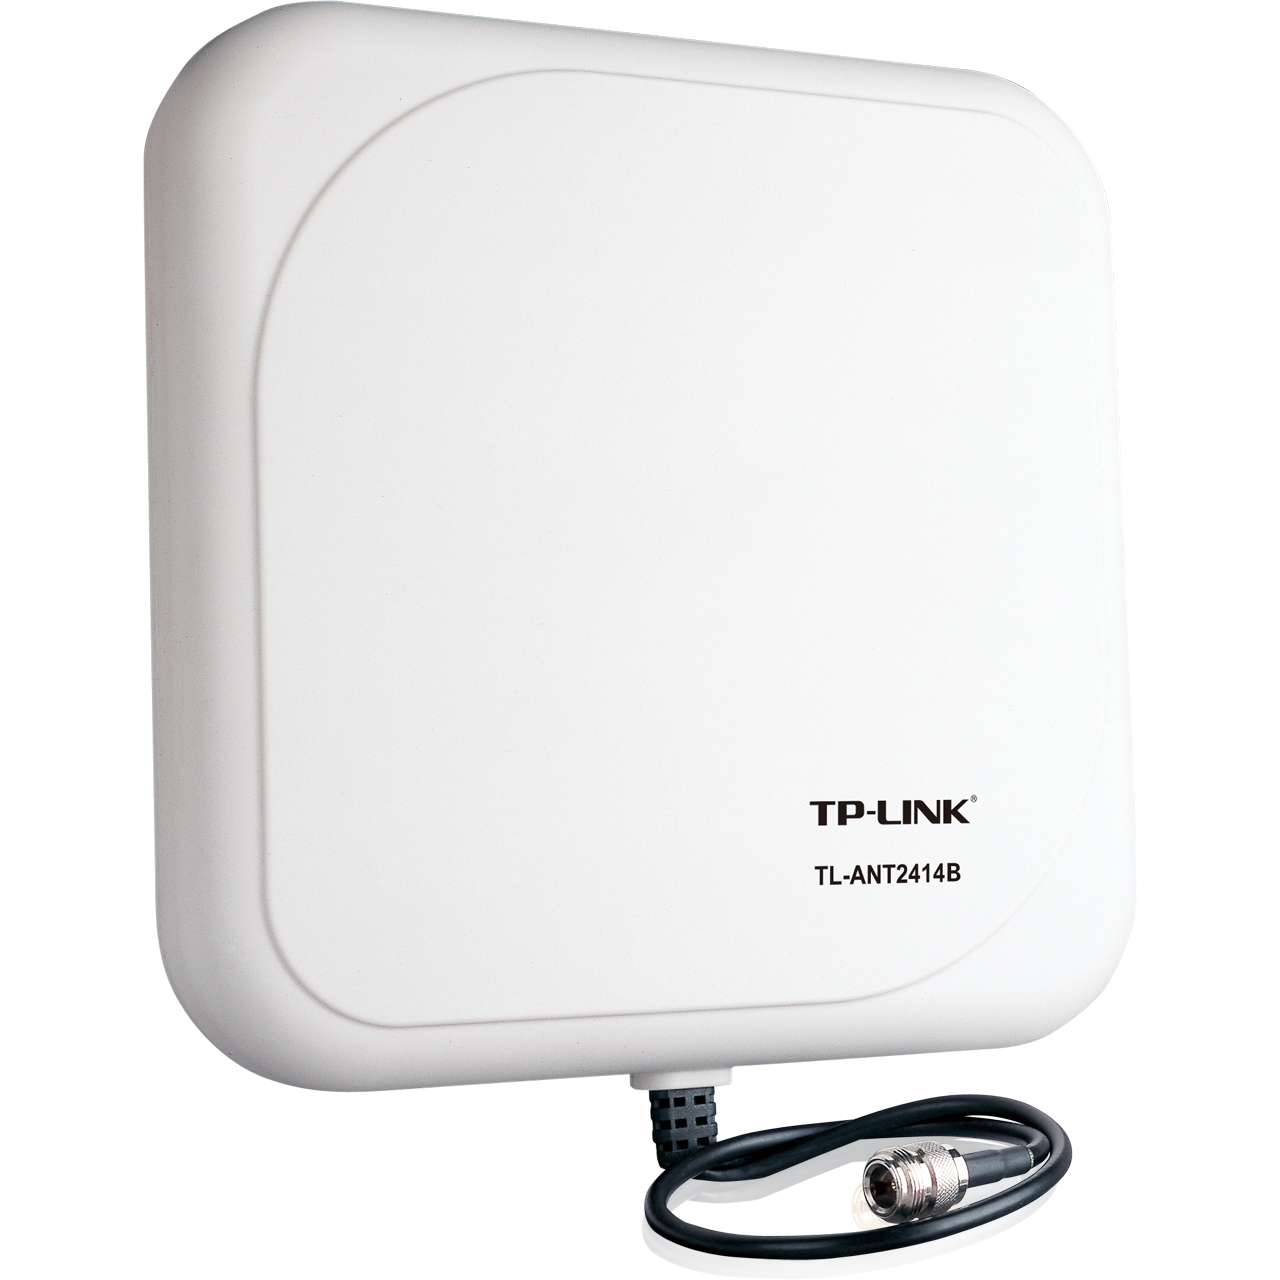 Antenne directionnelle 14 dBi 2,4 GHz TL-ANT2414B TP-LINK